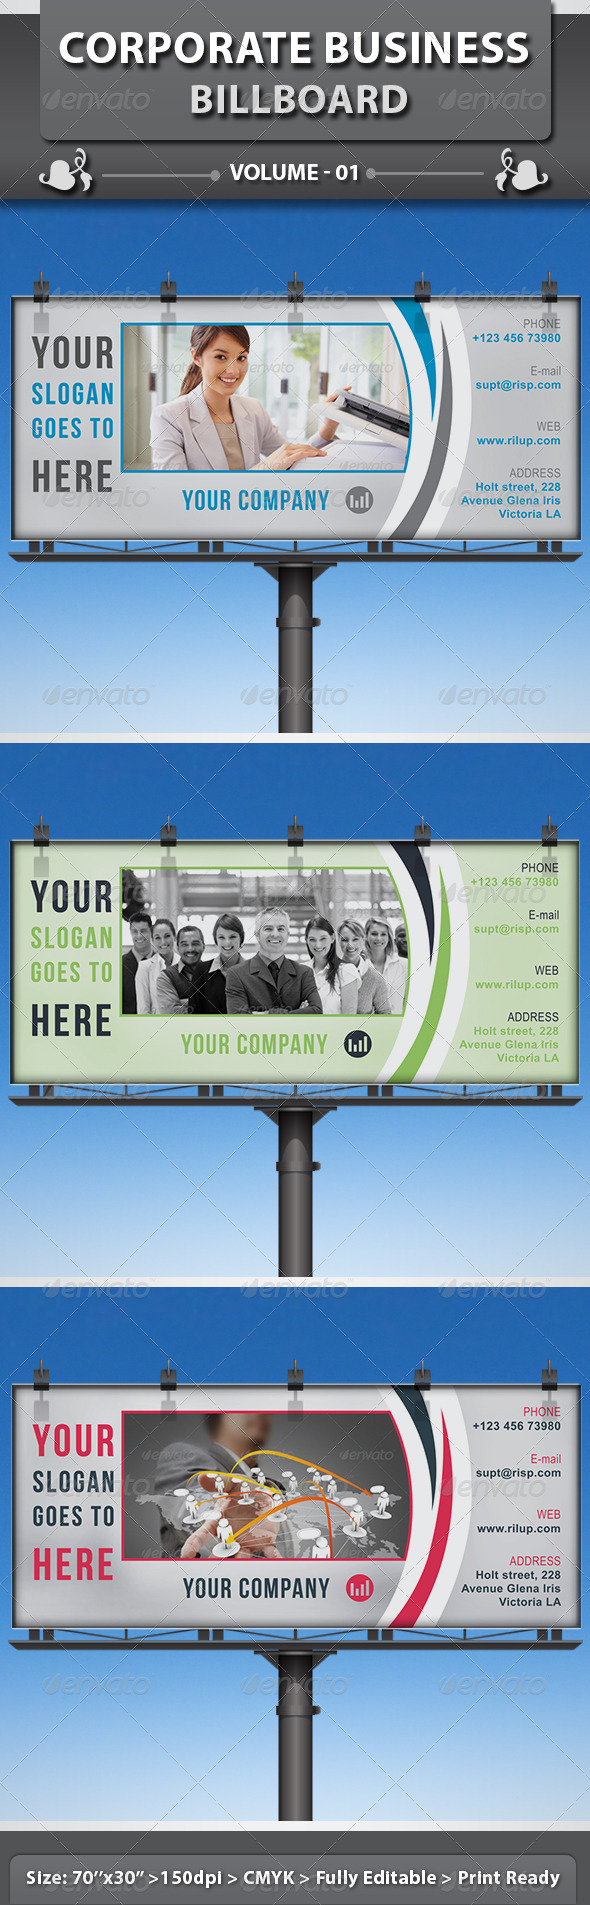 Corporate Business Billboard | Volume 1 - Signage Print Templates